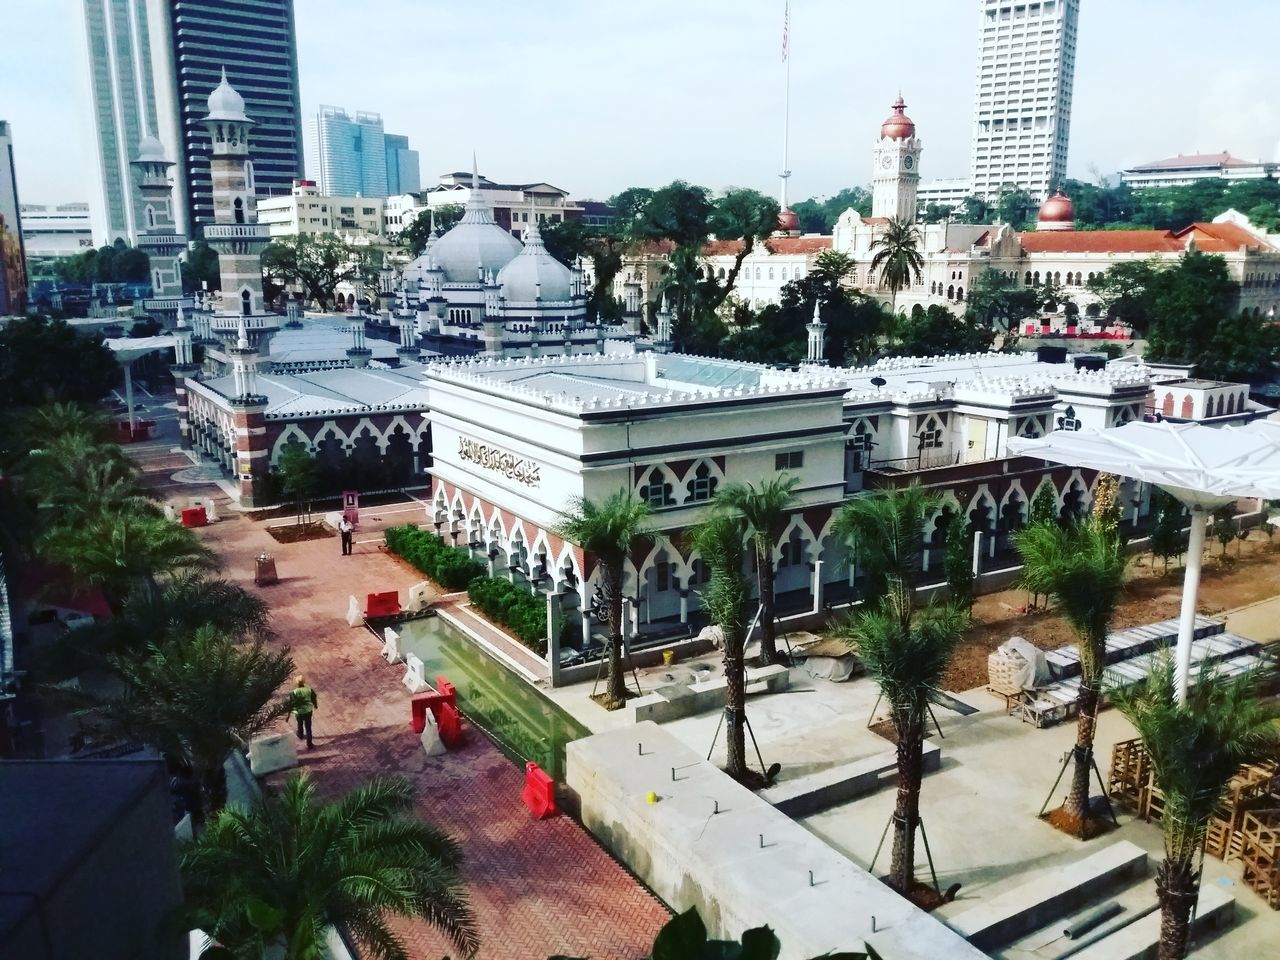 City Architecture Building Exterior Tree High Angle View Built Structure City Life Outdoors Day Sky Skyscraper Mosque Mosquephotography